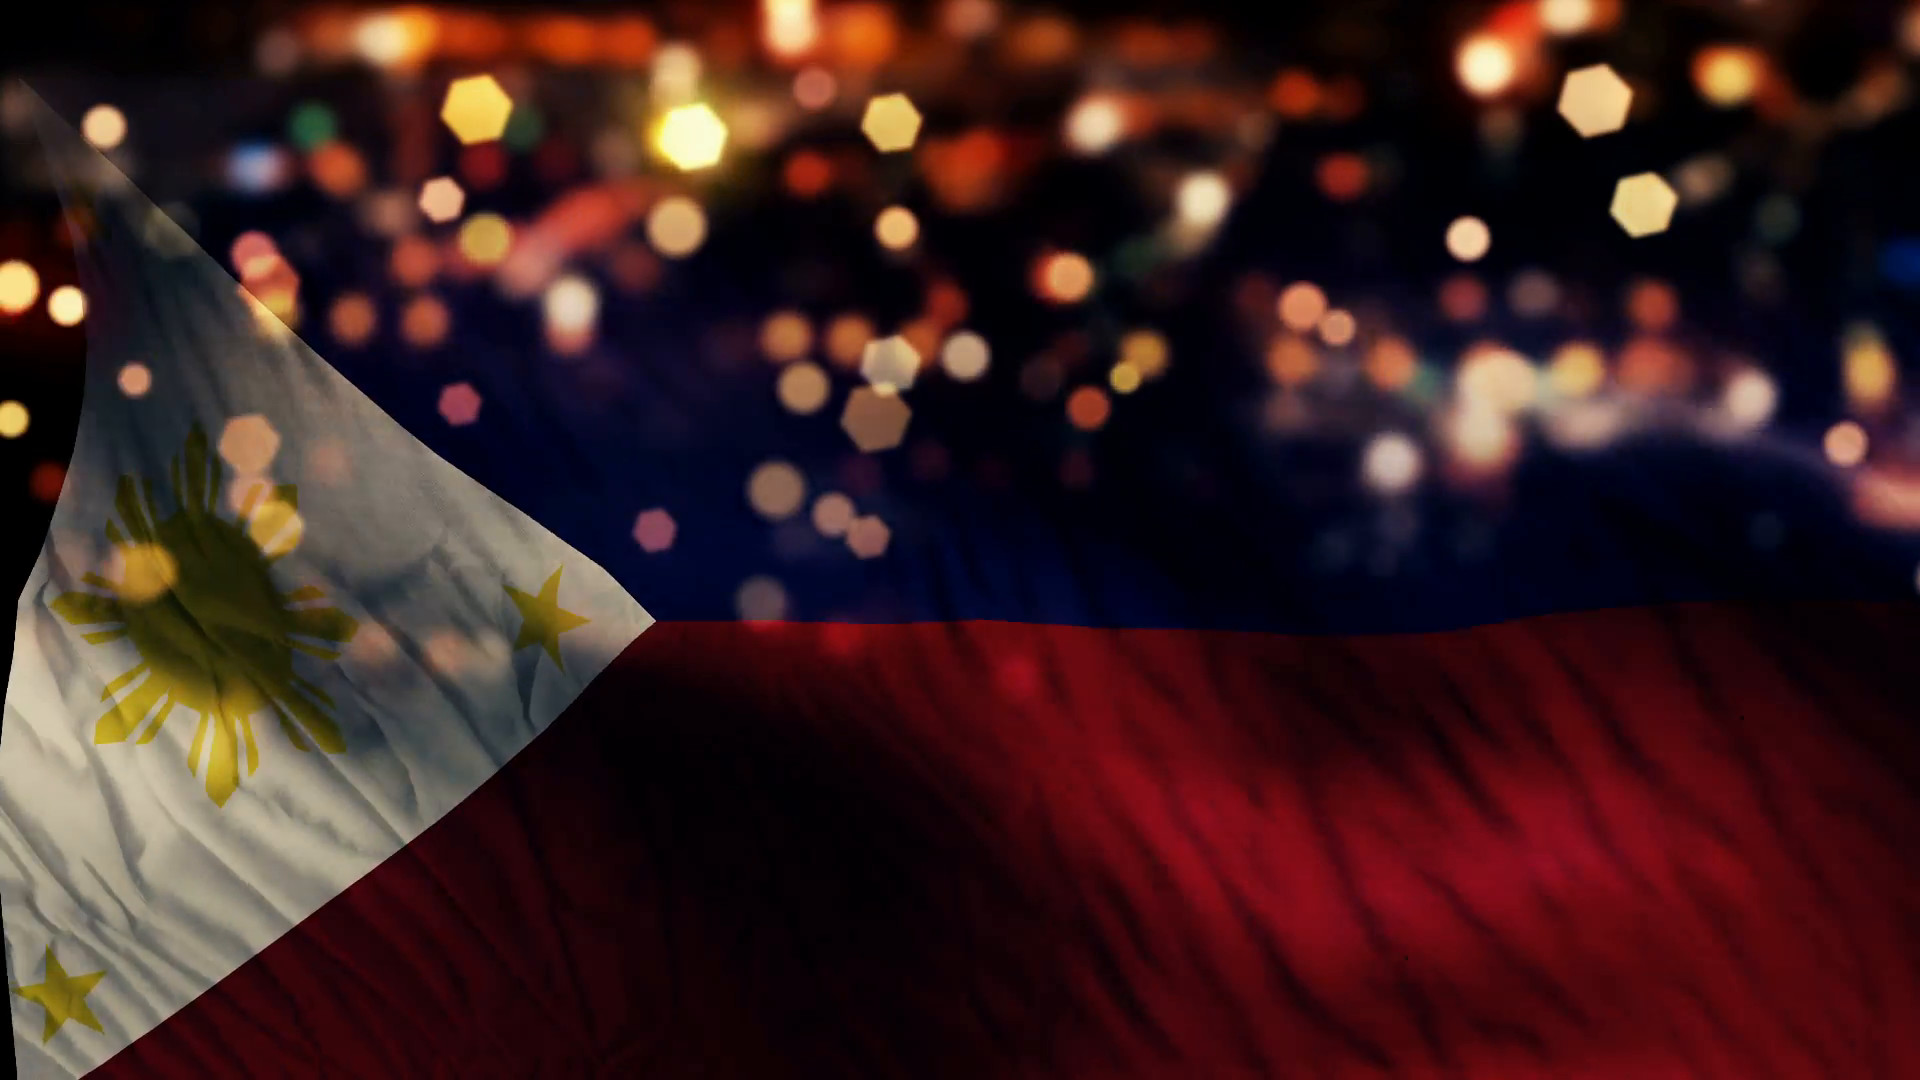 Res: 1920x1080, Philippines Flag Light Night Bokeh Abstract Loop Animation Motion  Background - Videoblocks